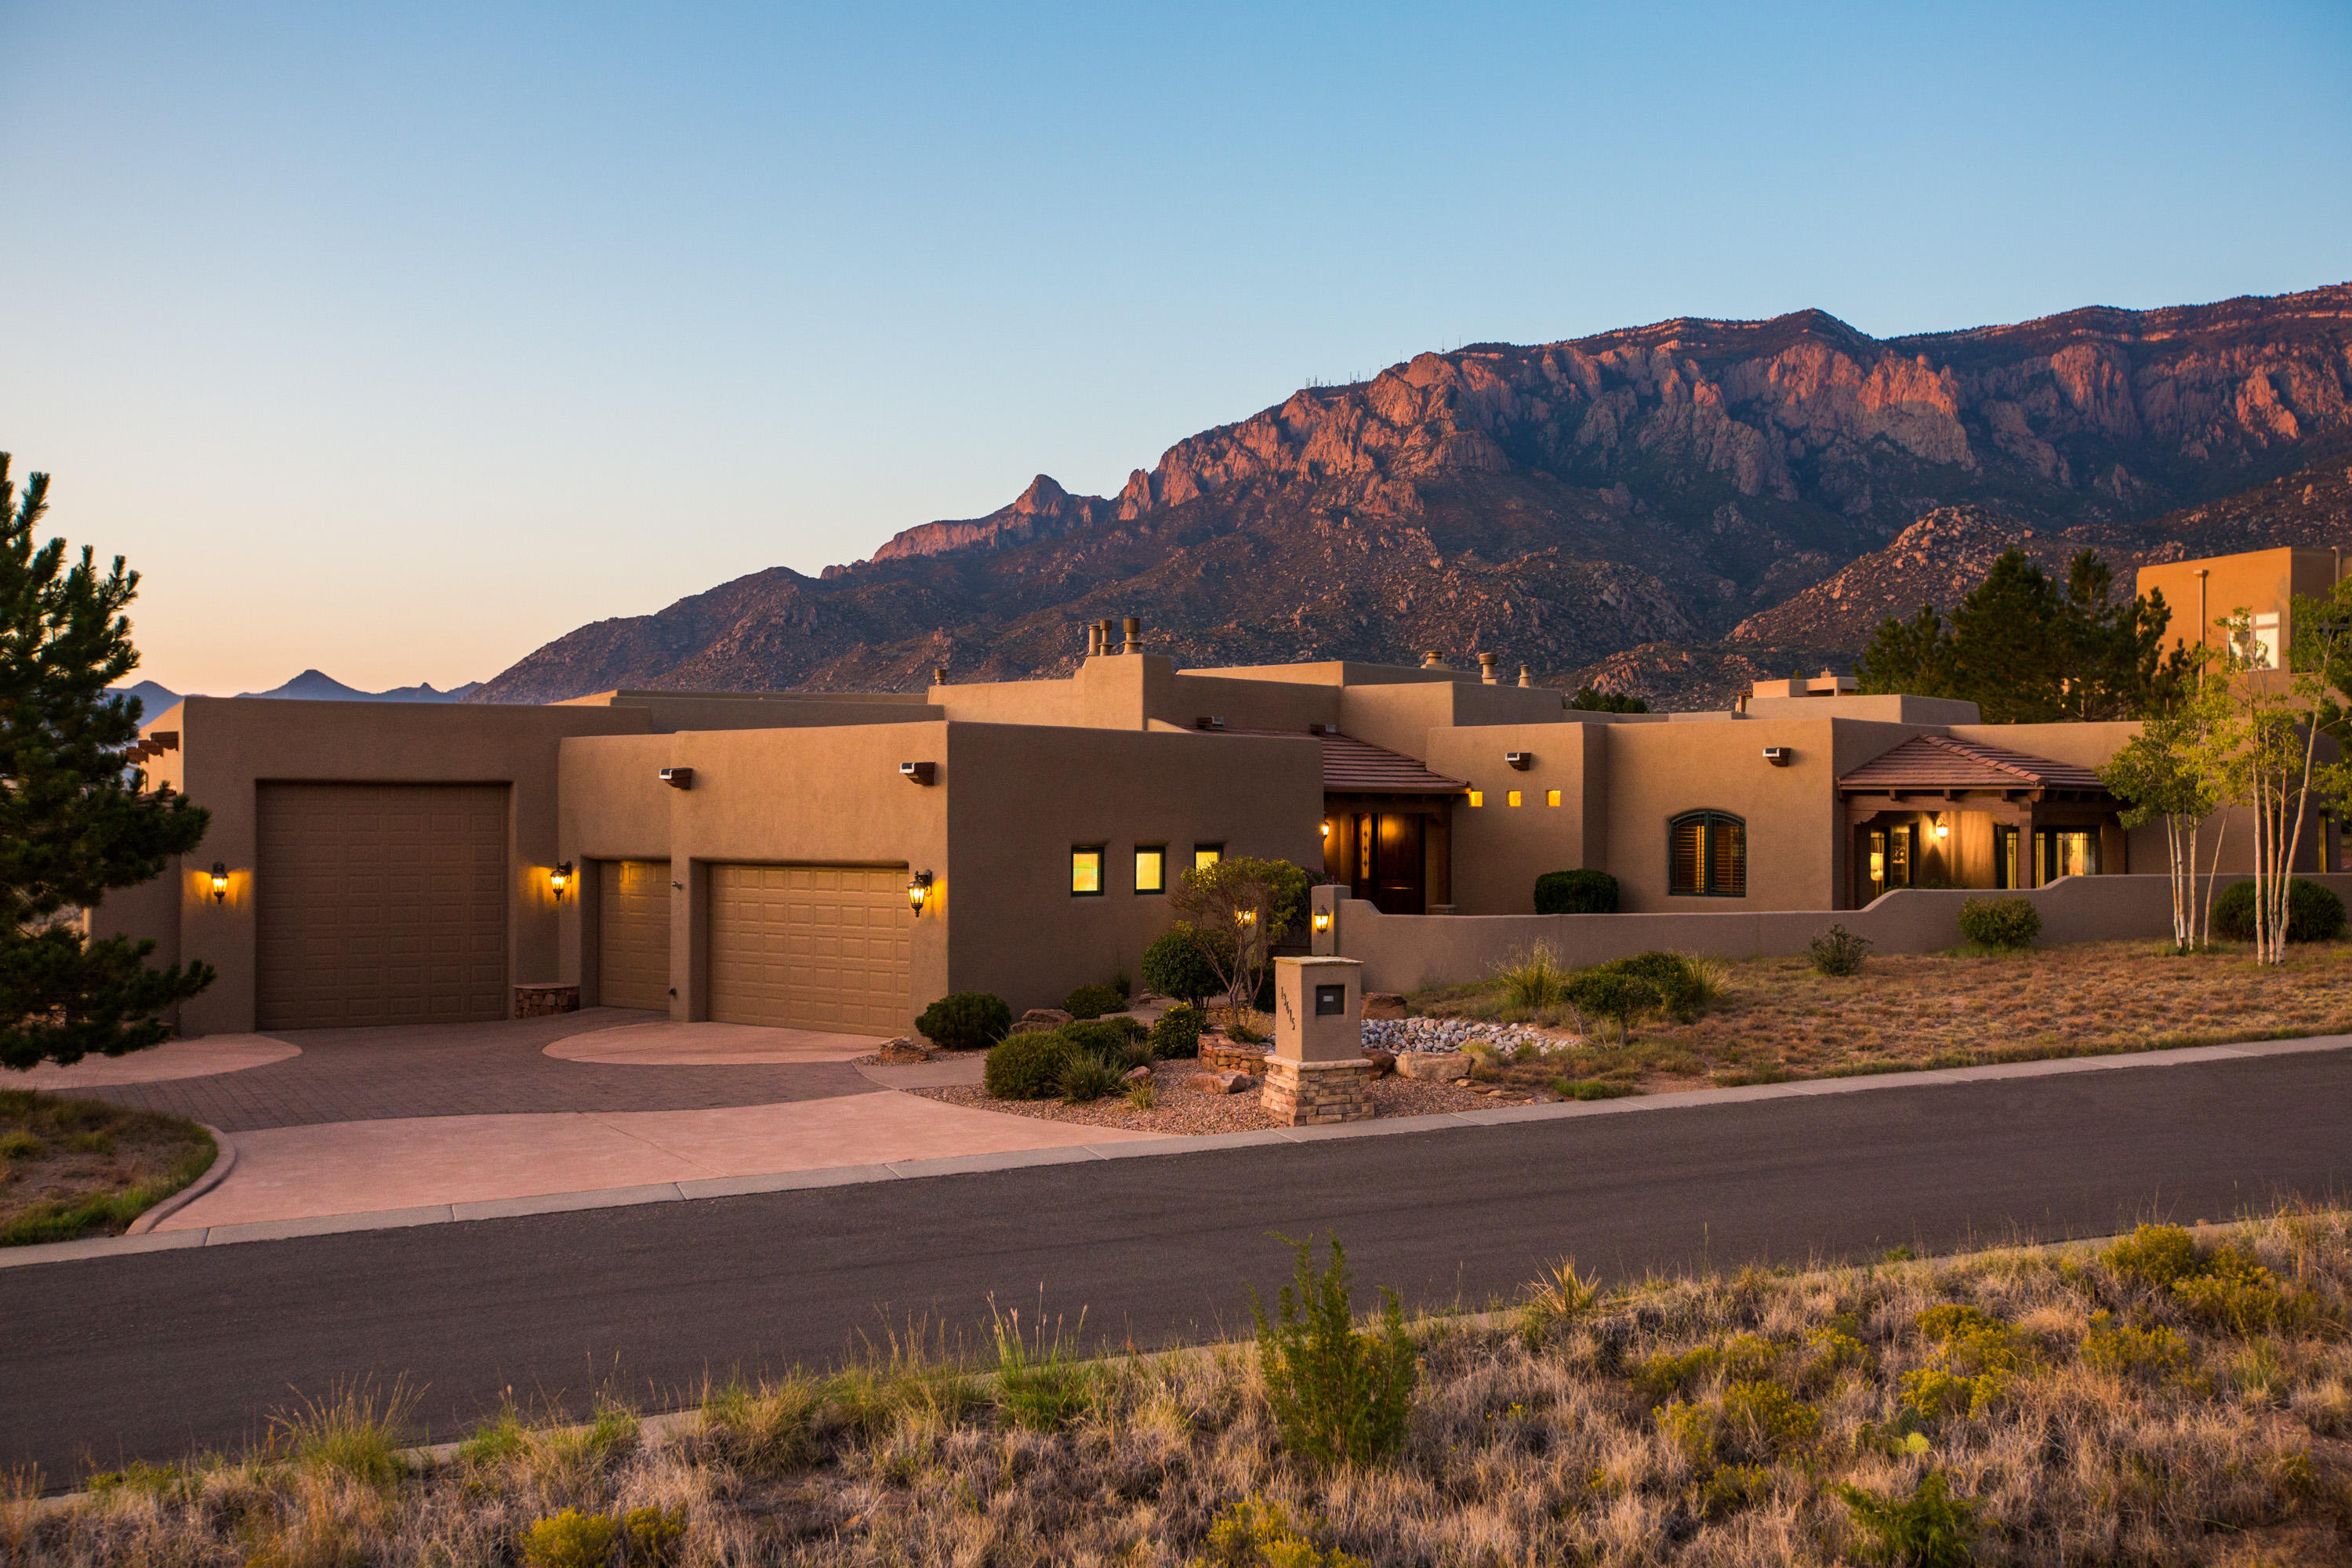 13615 QUAKING ASPEN Place NE Property Photo - Albuquerque, NM real estate listing